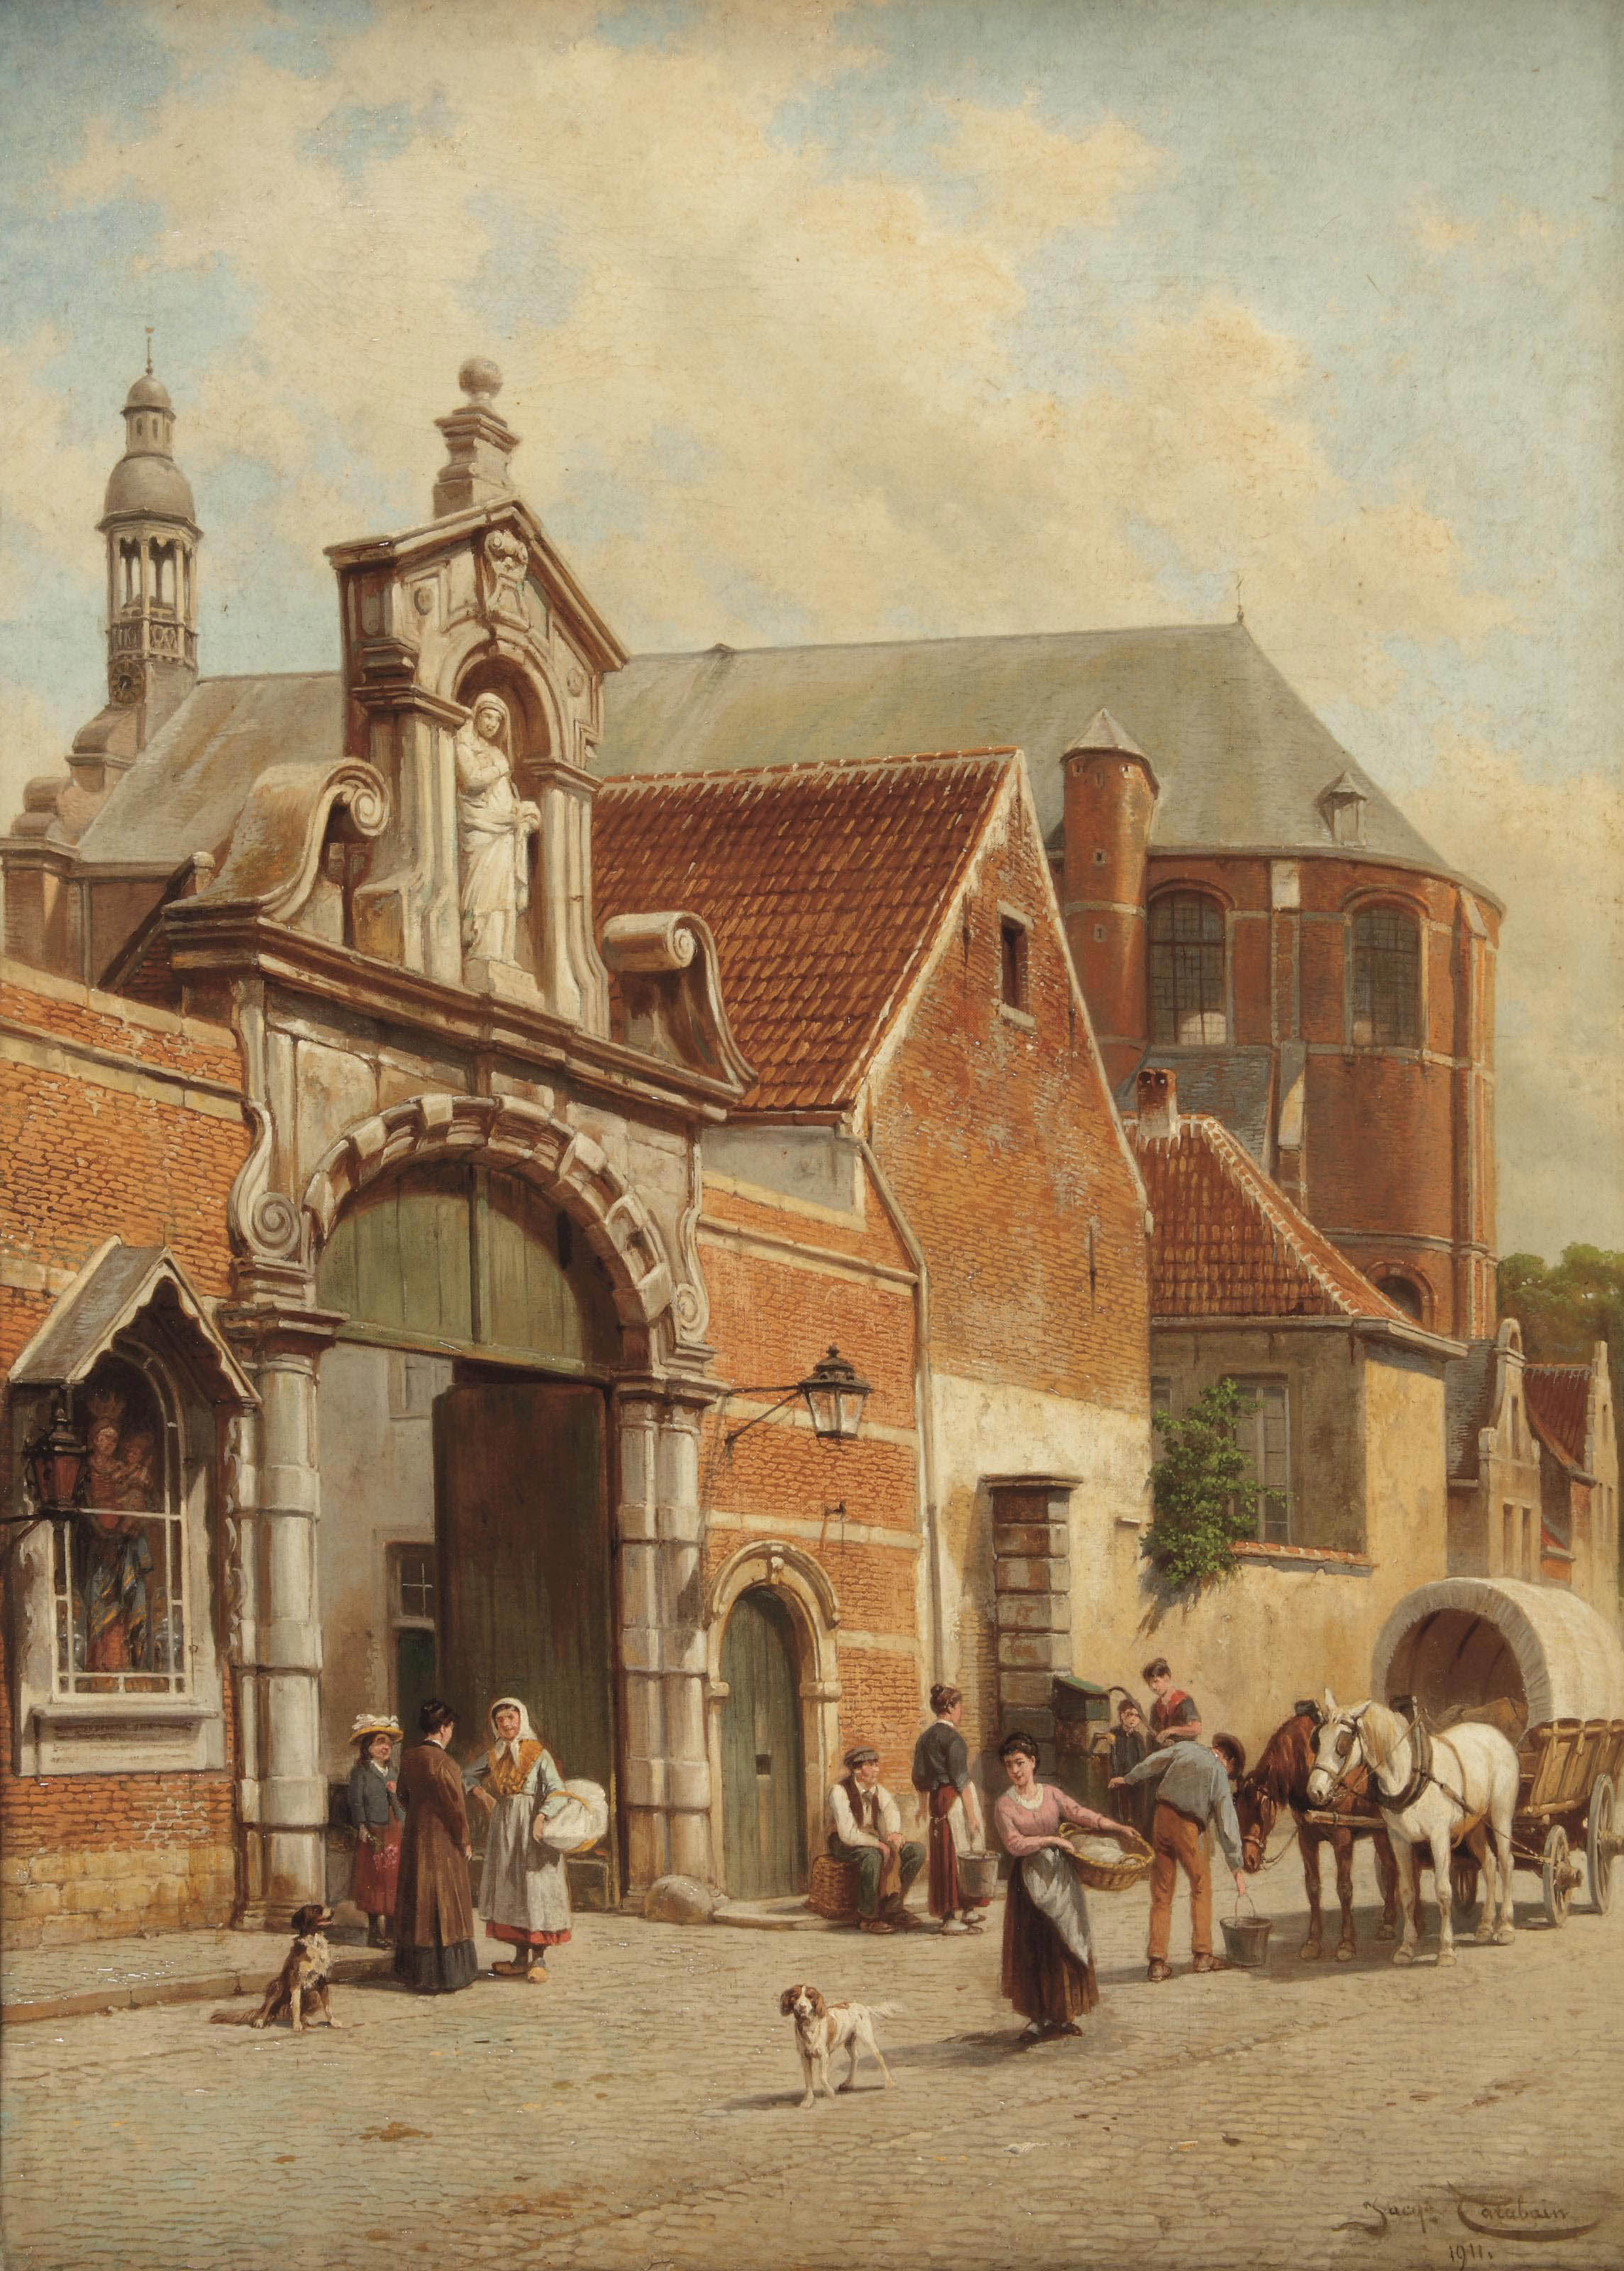 The port of the Béguinage in Lier, Belgium